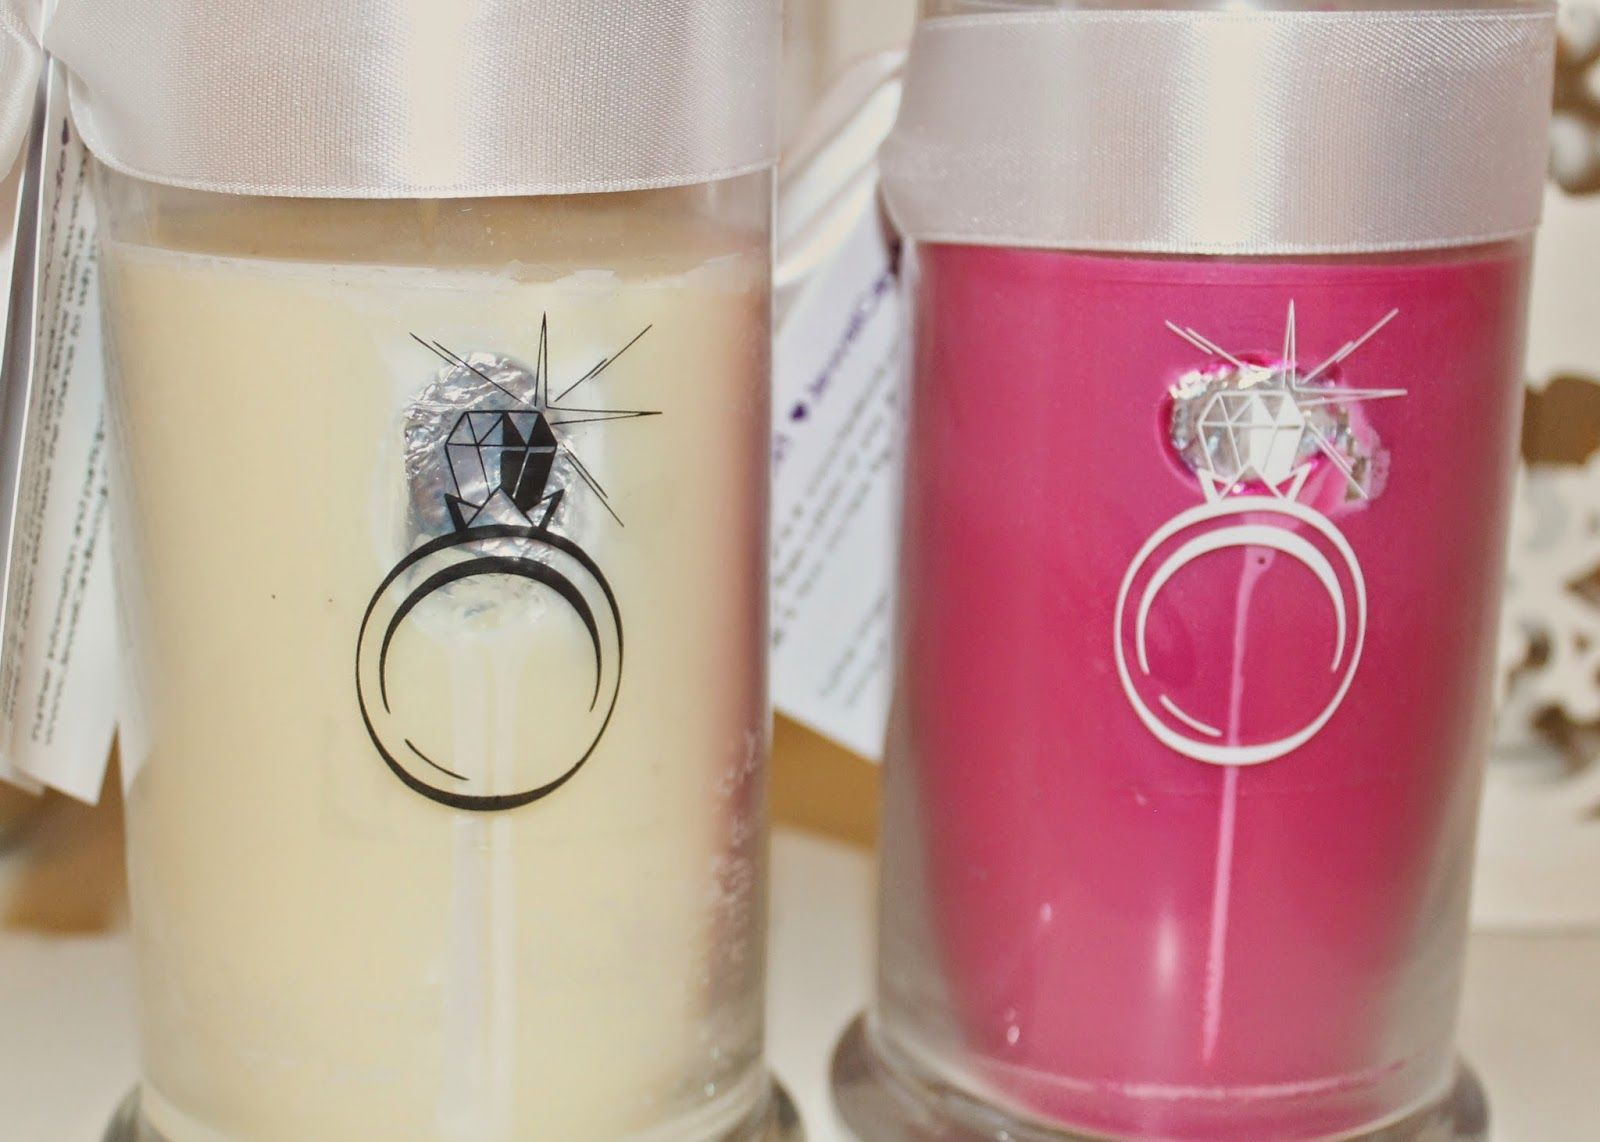 flutter and sparkle giveaway jewel candle surprise jewellery candle review and giveawayhttp. Black Bedroom Furniture Sets. Home Design Ideas